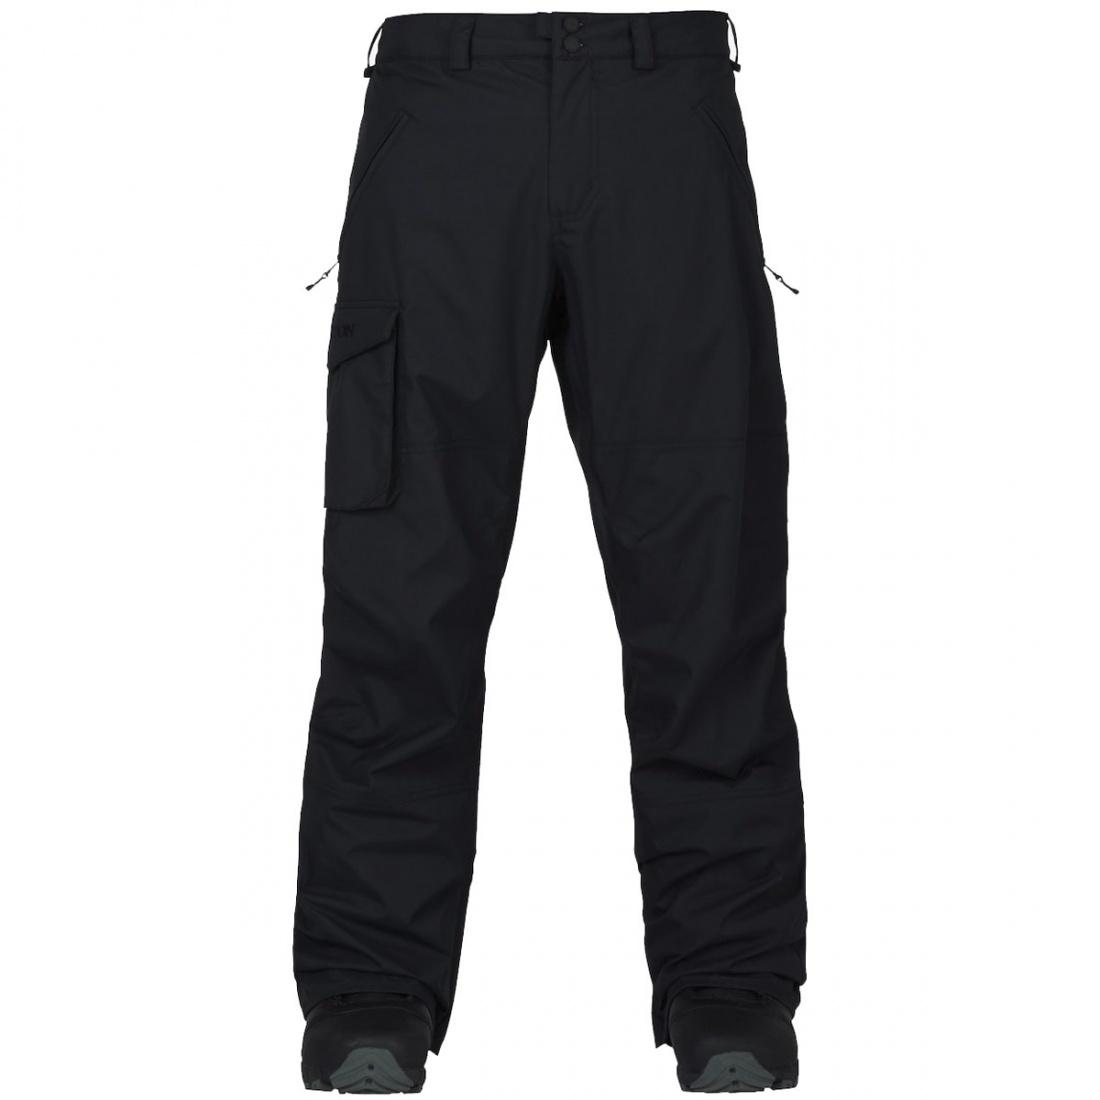 цены на Burton Штаны для сноуборда Burton Insulated Covert Pant TRUE BLACK L в интернет-магазинах